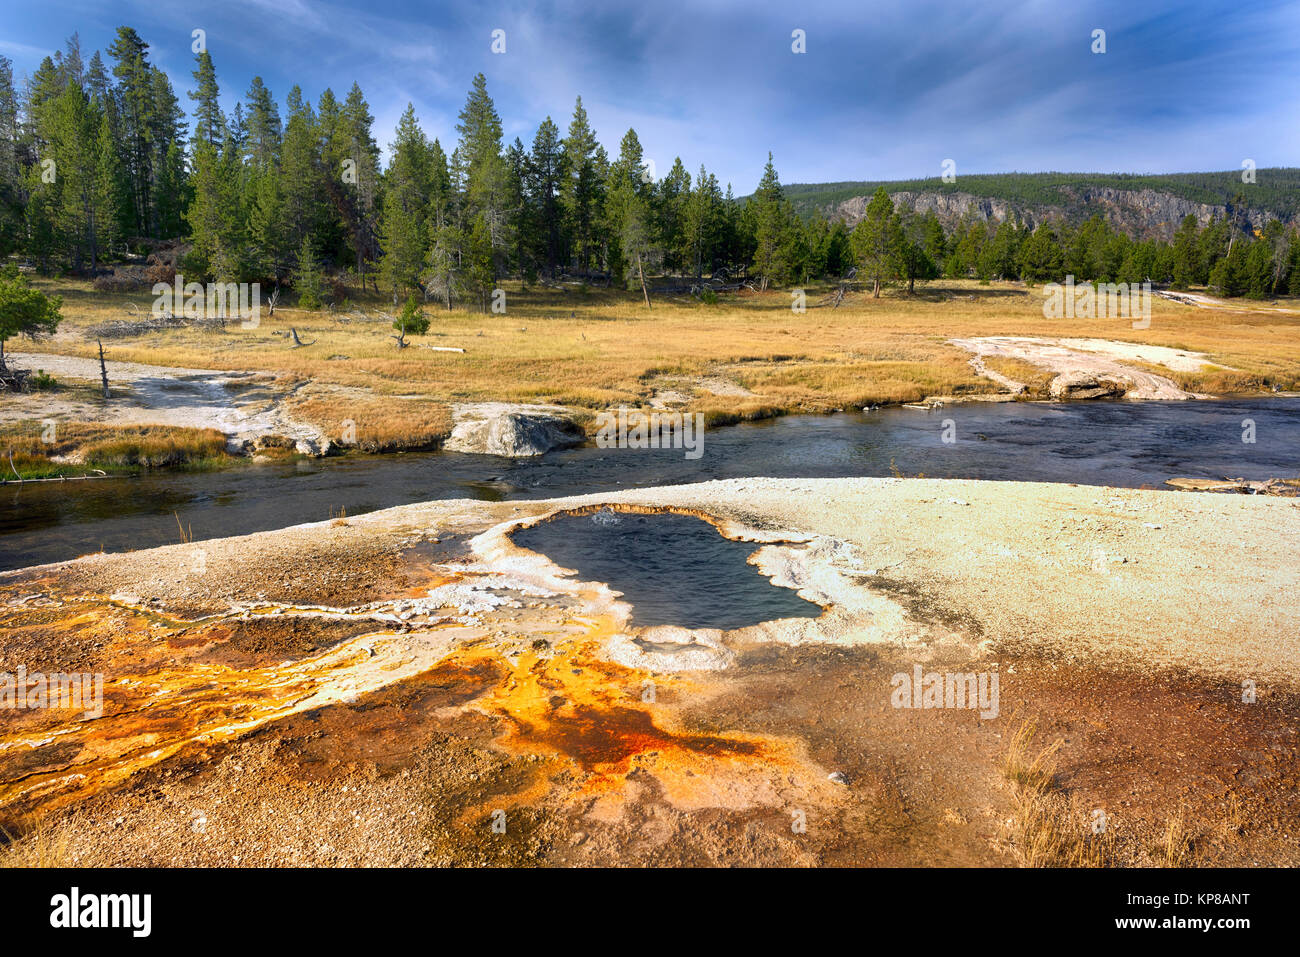 Firehole River, Yellowstone National Park, Wyoming, USA. Die firehole River fließt durch mehrere bedeutende Stockbild